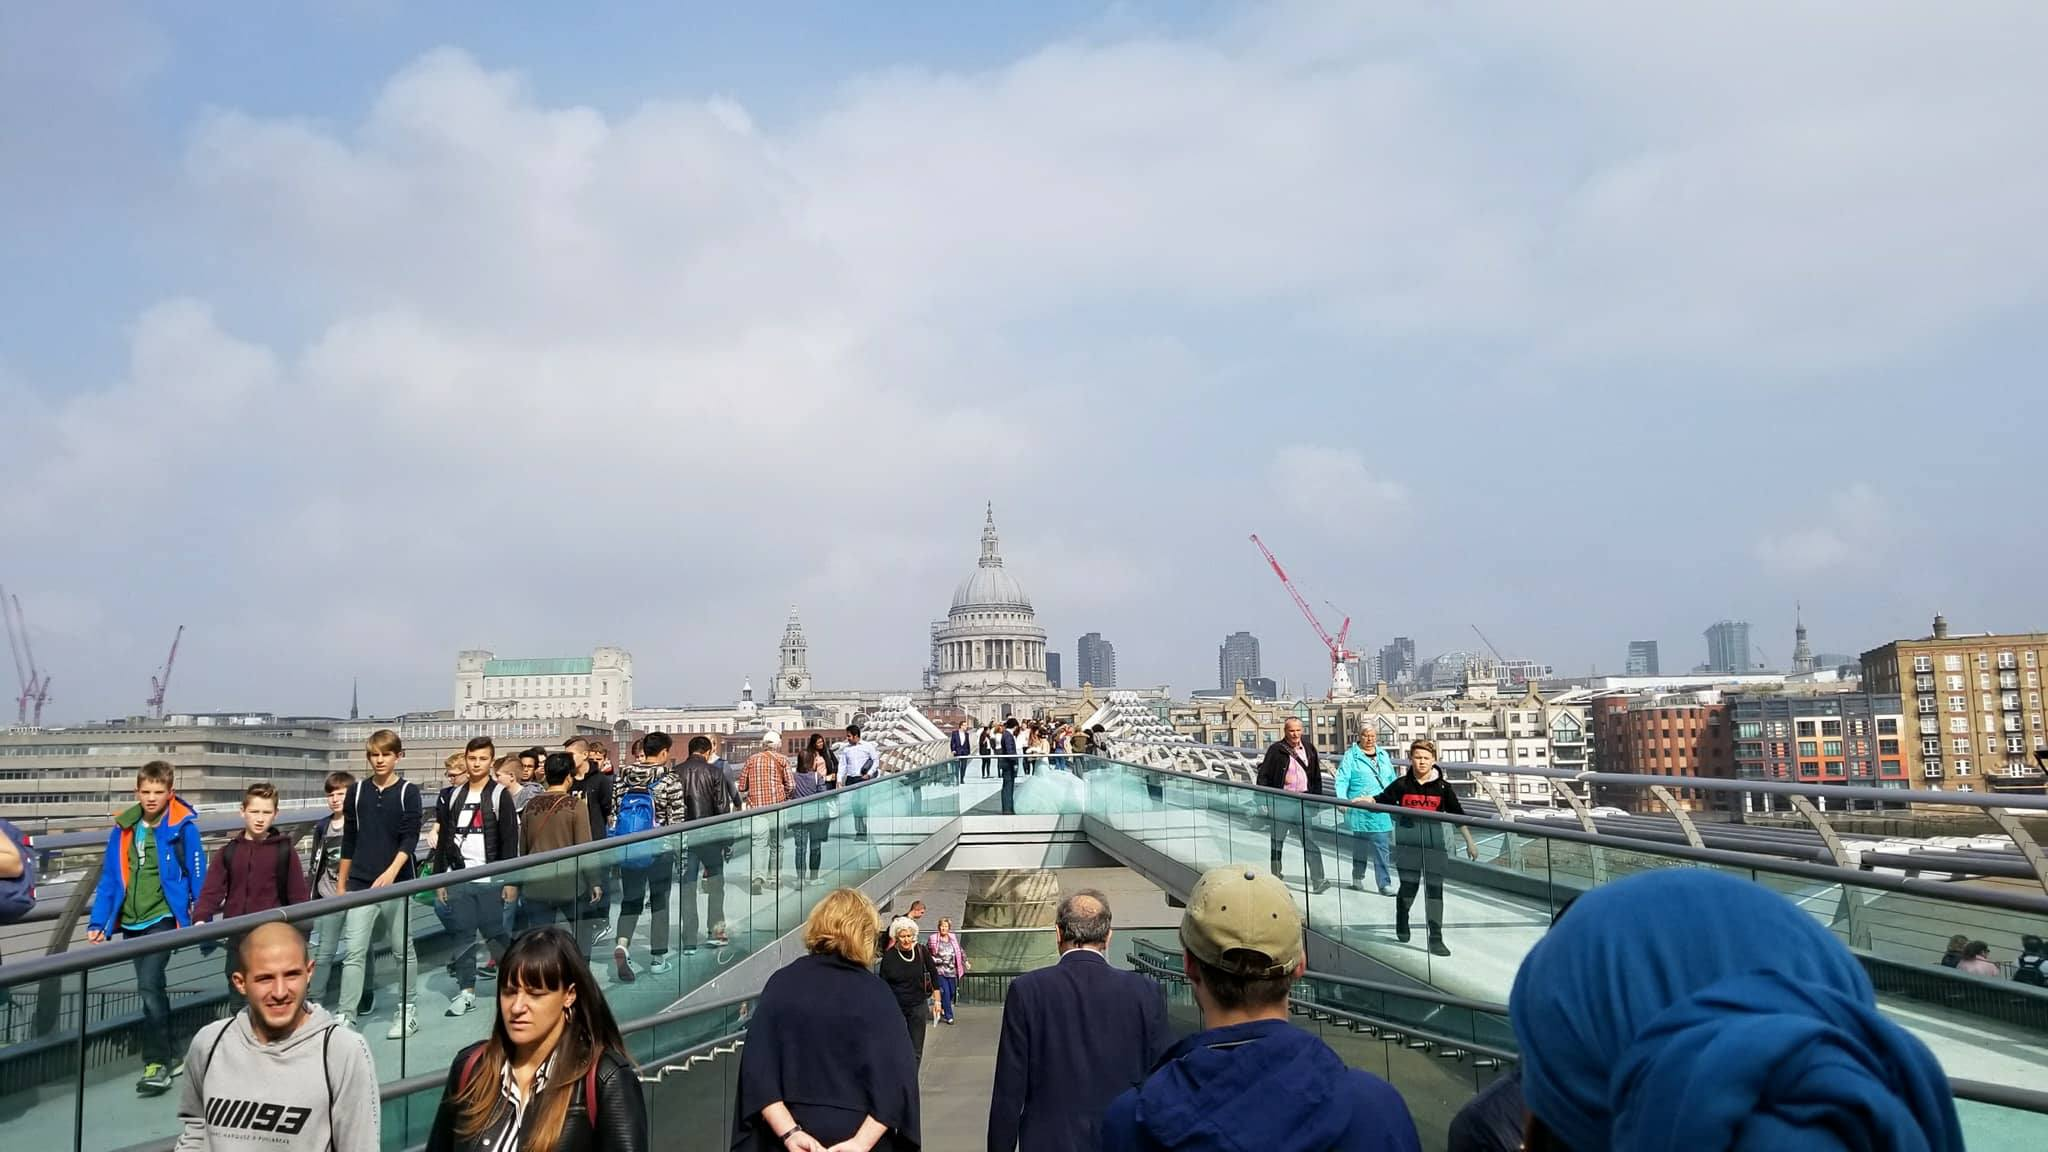 CAPAStudyAbroad_London_Fall2017_From Thaddeus Kaszuba - View of St. Paul's Cathedral from Suspended Bridge over Thames.jpg